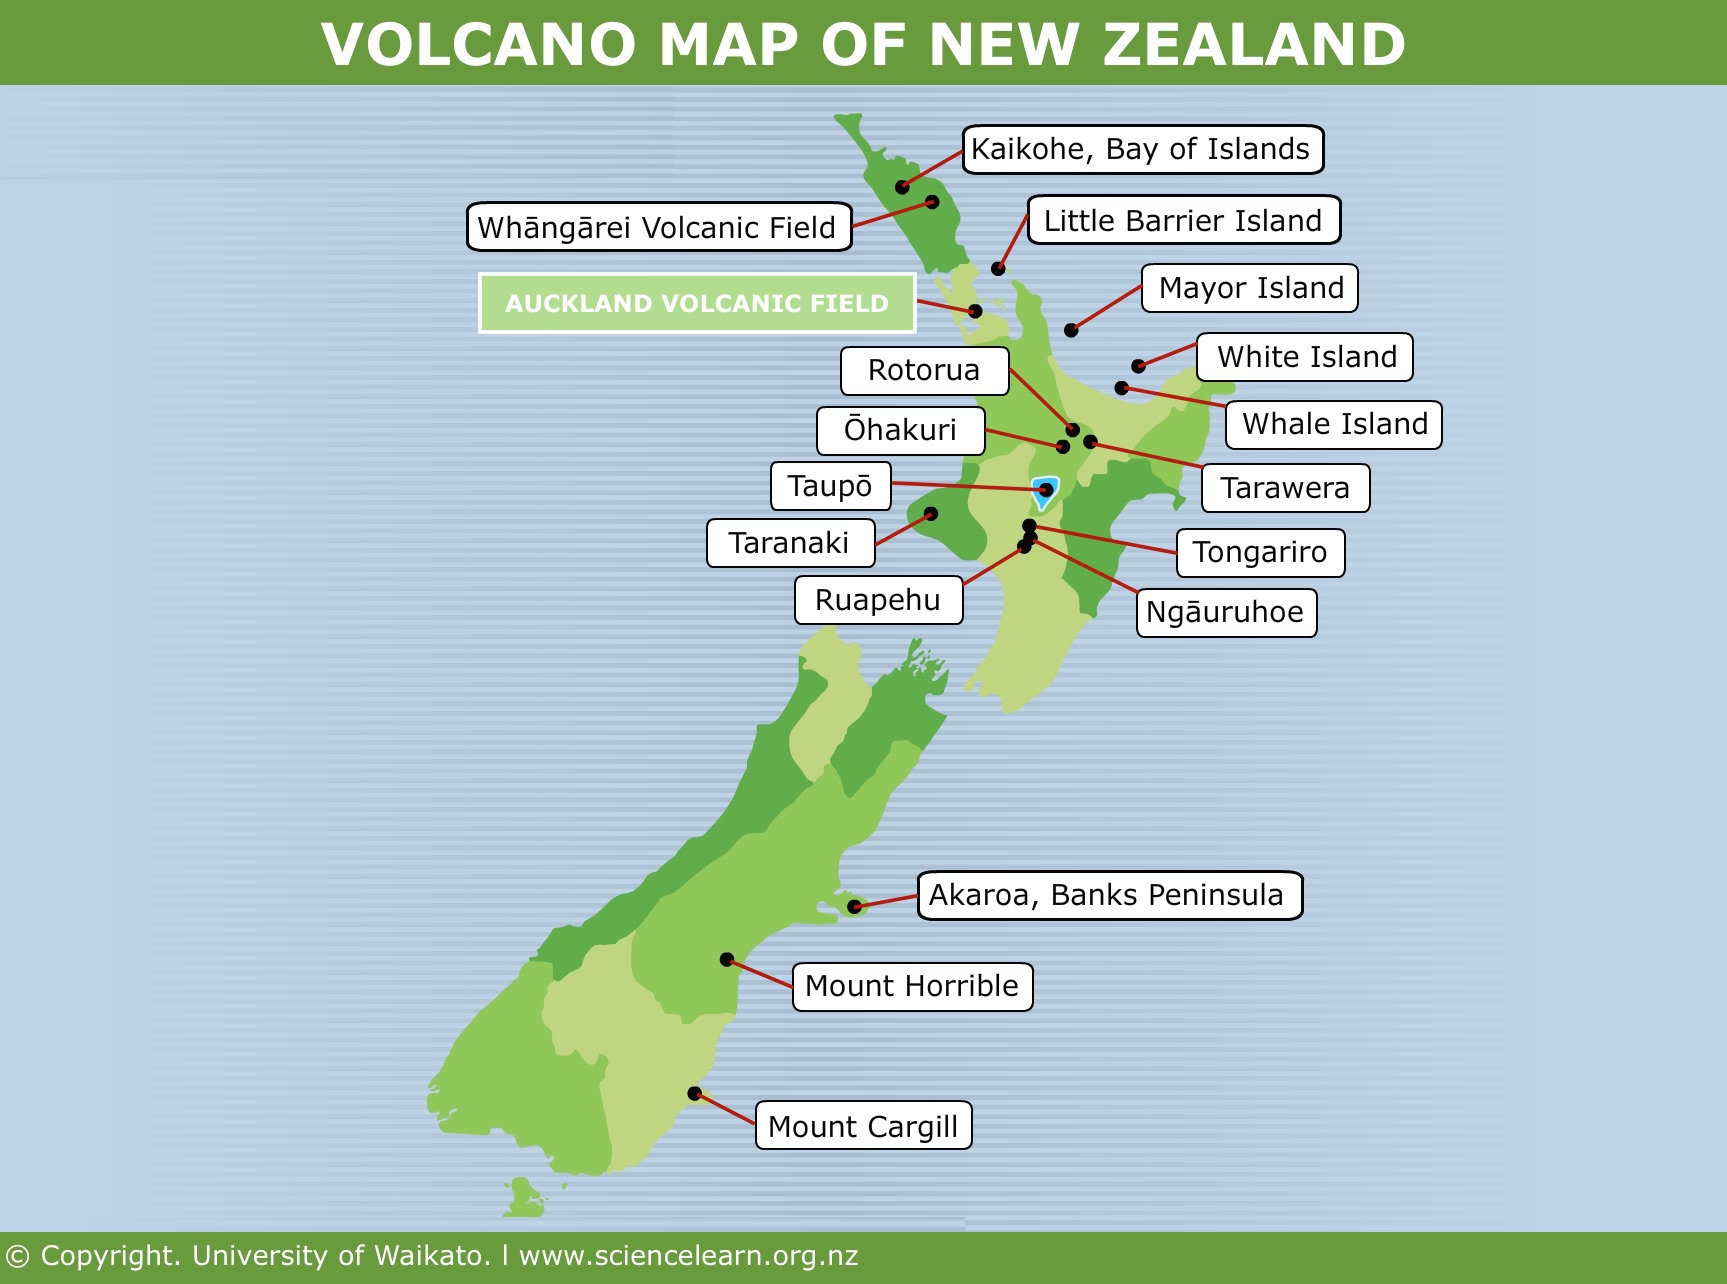 Map Of New Zealand Auckland.Volcano Map Of New Zealand Science Learning Hub